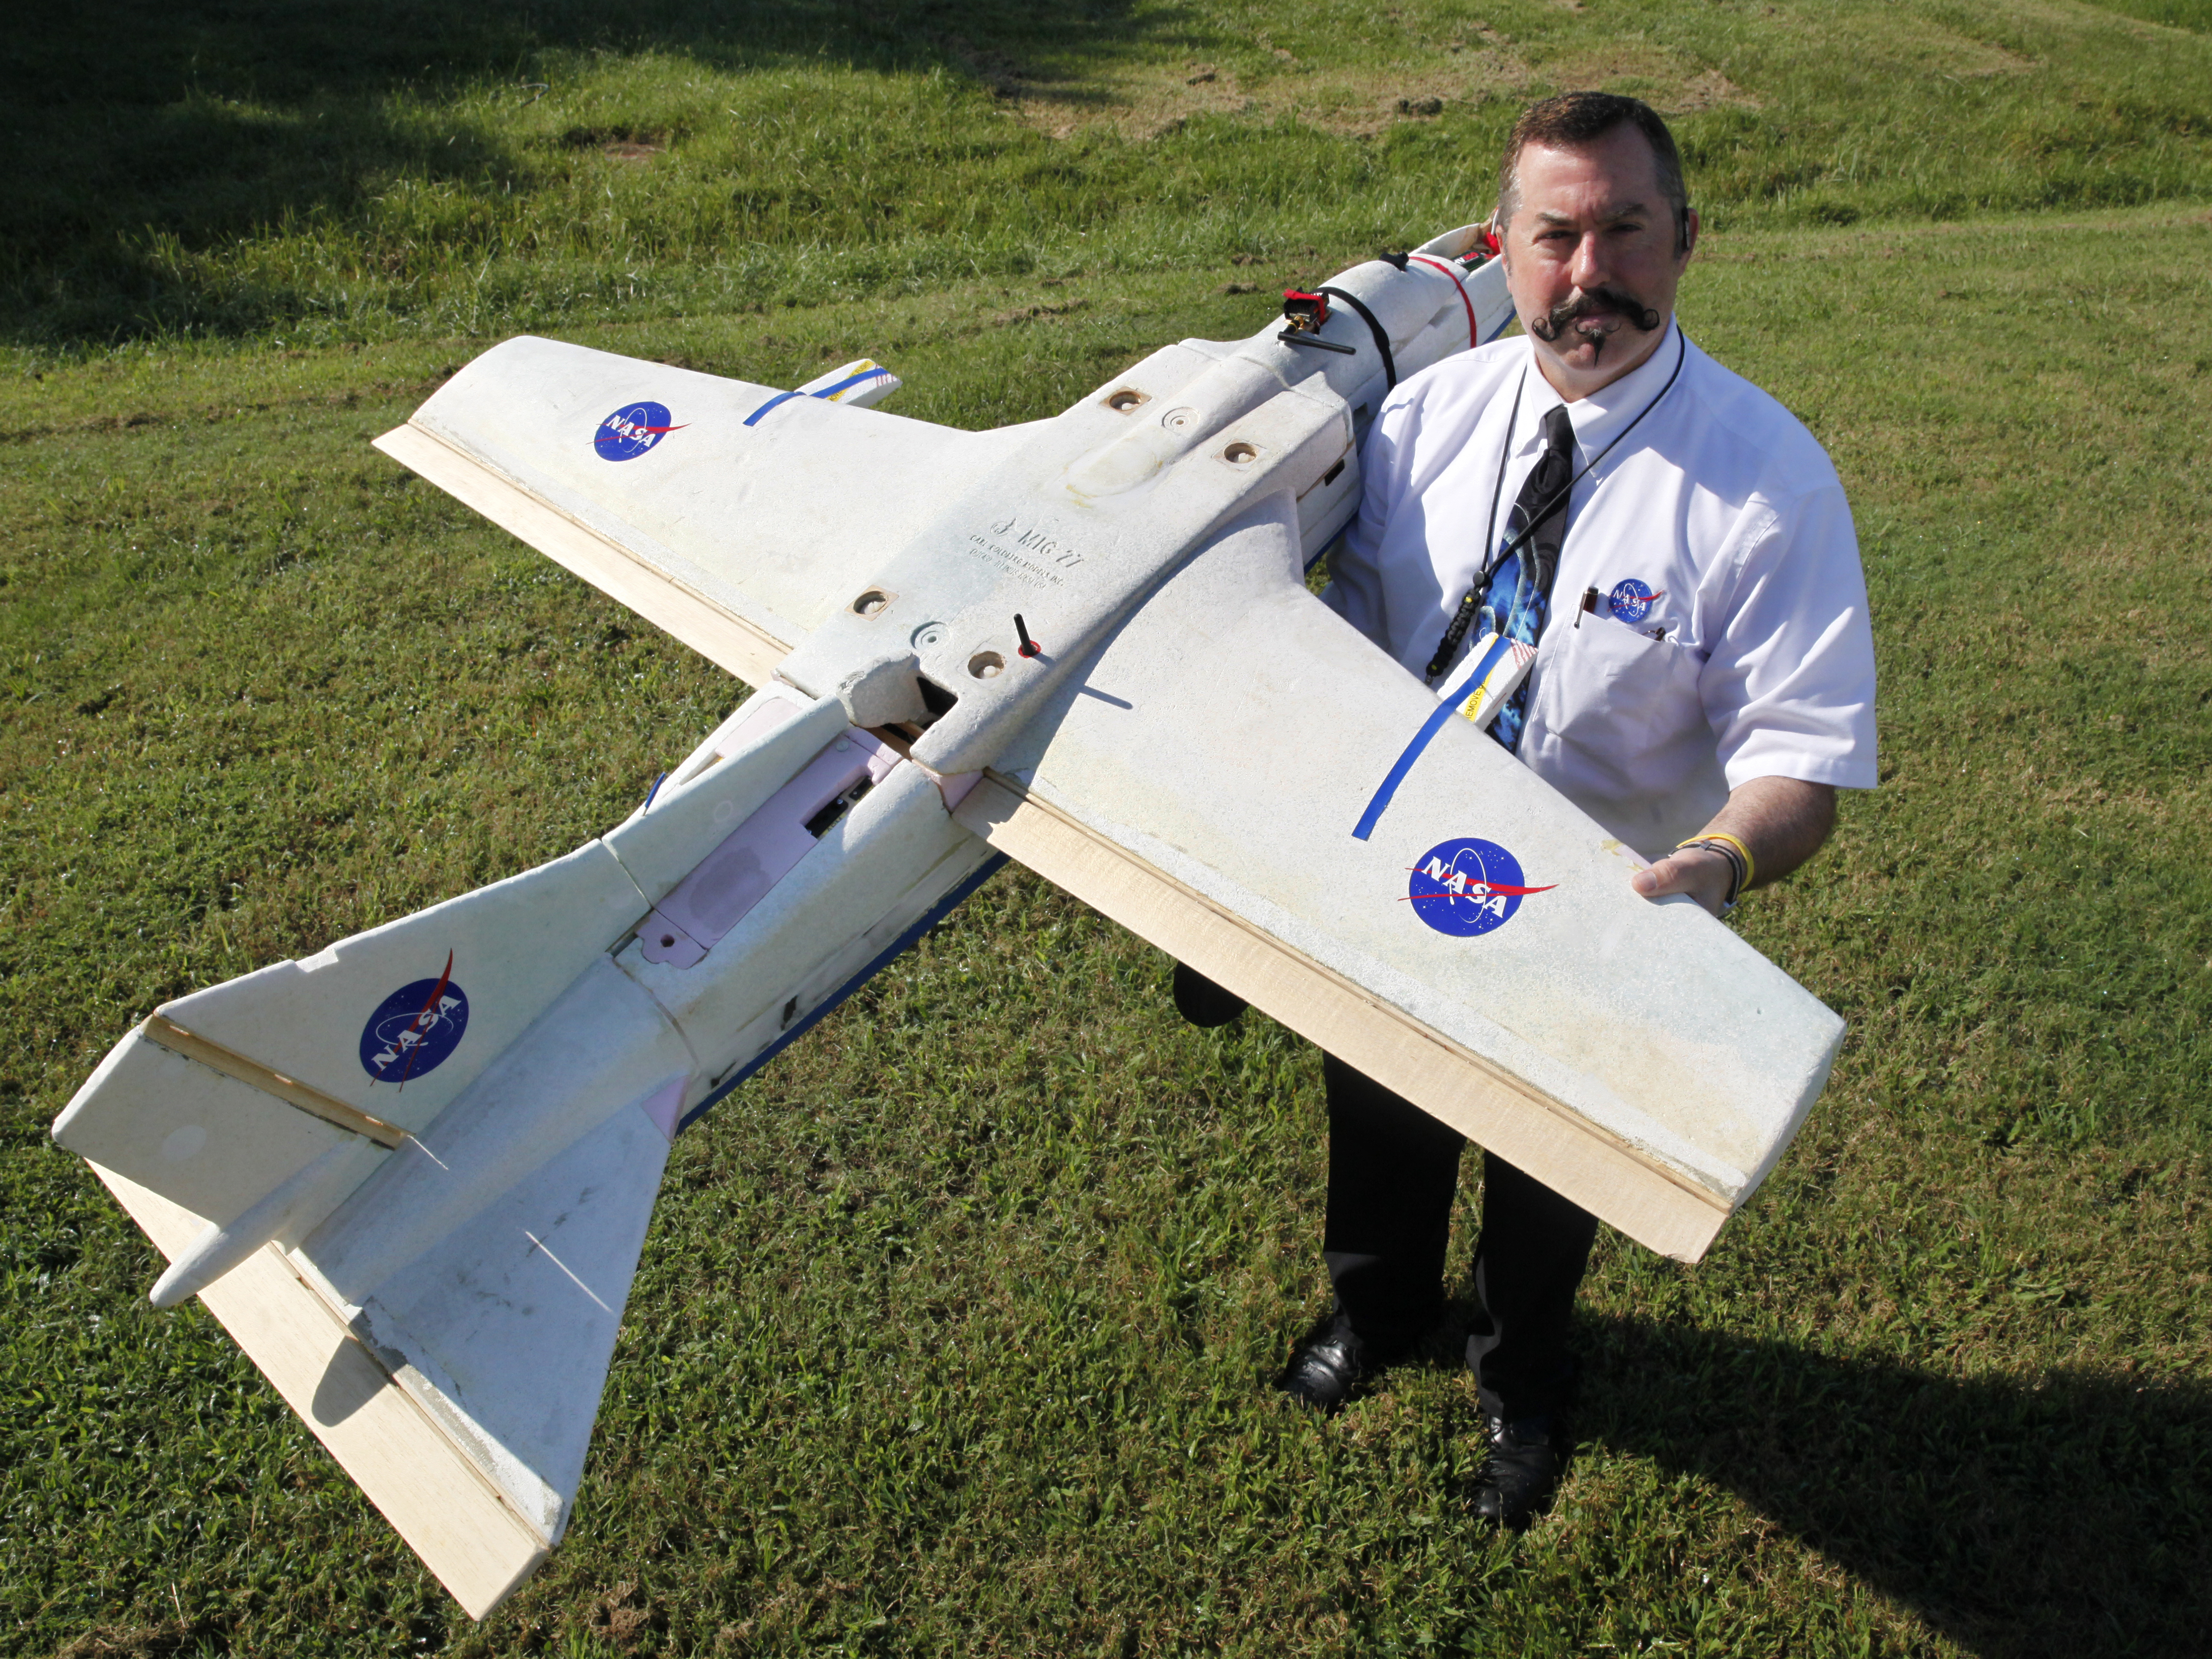 Aeronautics NASA Researcher Mike Logan Plans To Use This Small Unmanned Aerial Vehicle Check For Fires